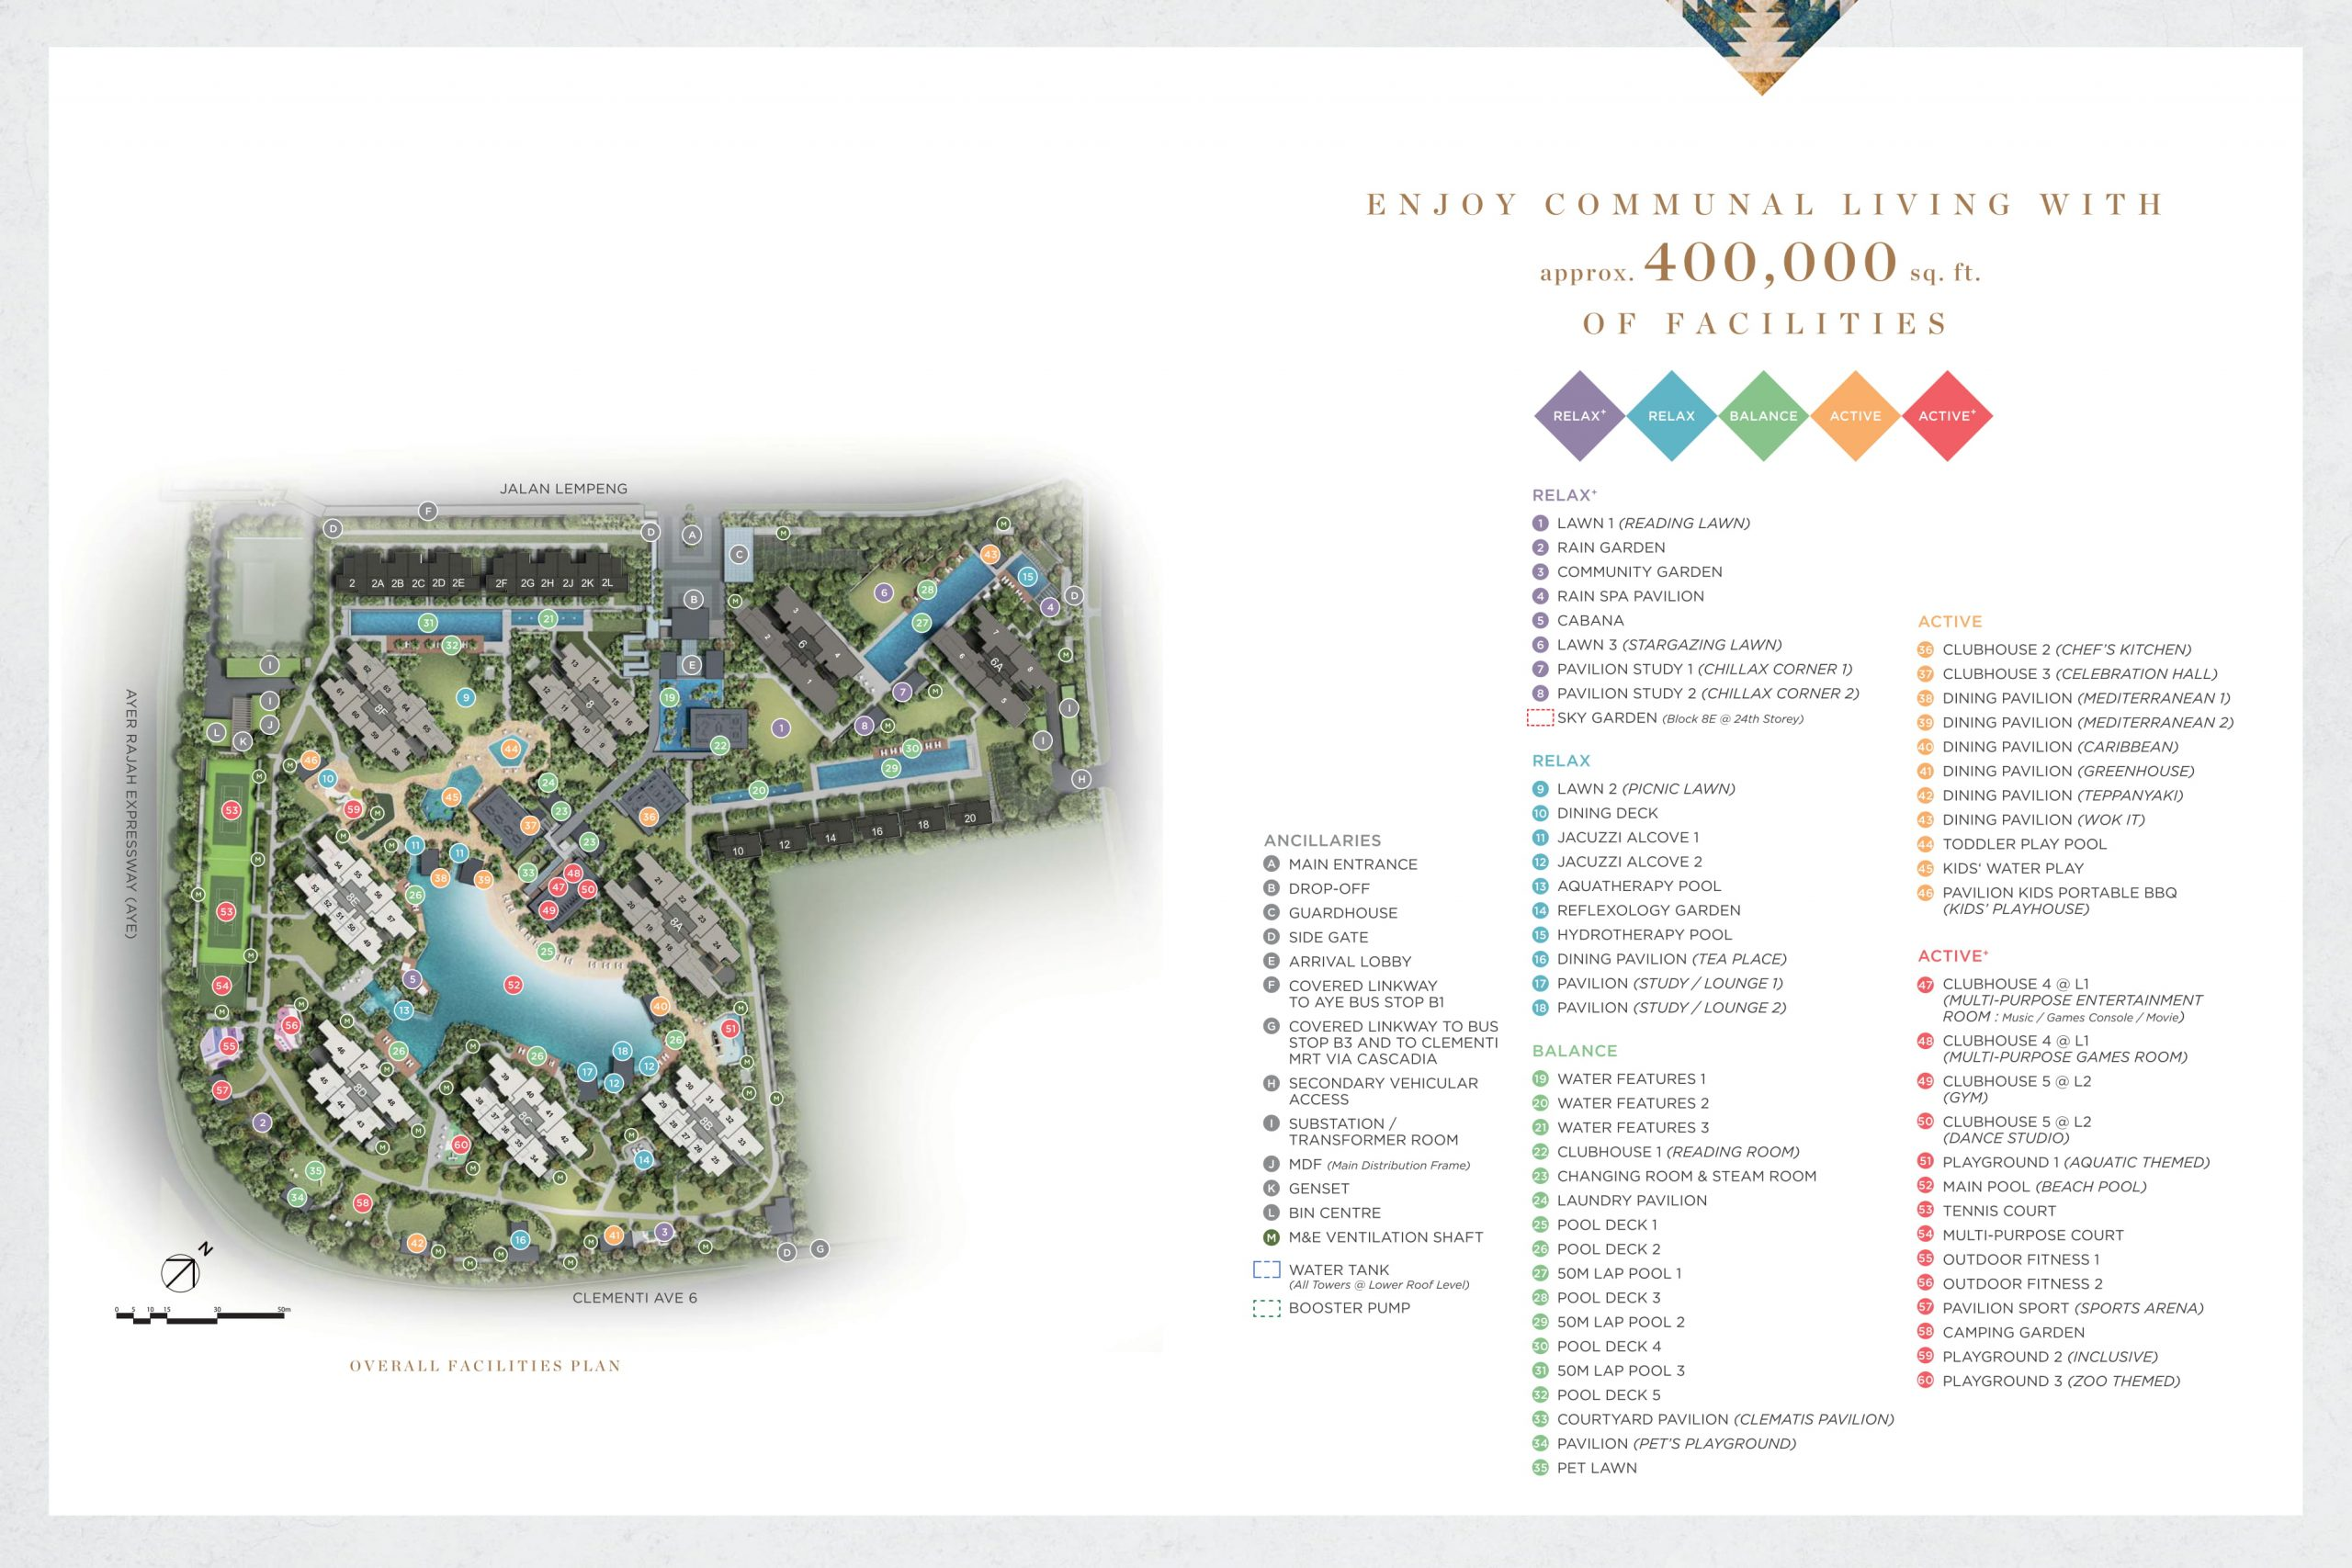 Parc Clematis' site plan and facilities